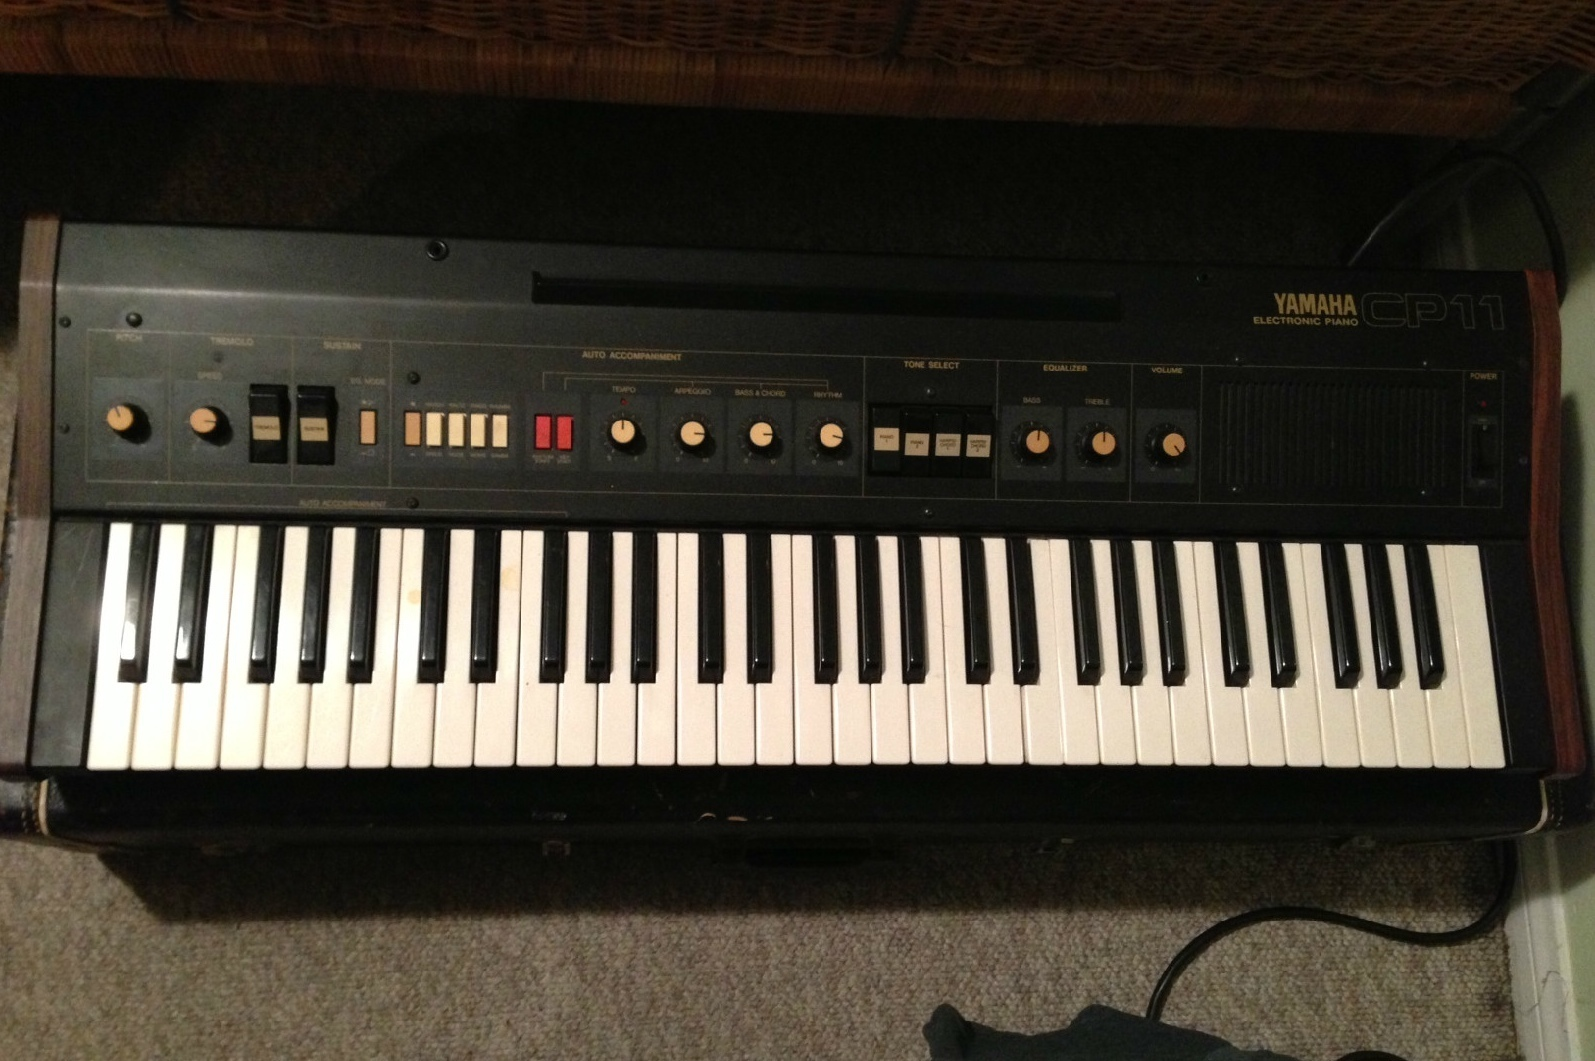 matrixsynth yamaha cp 11 electric piano with auto accompaniment. Black Bedroom Furniture Sets. Home Design Ideas